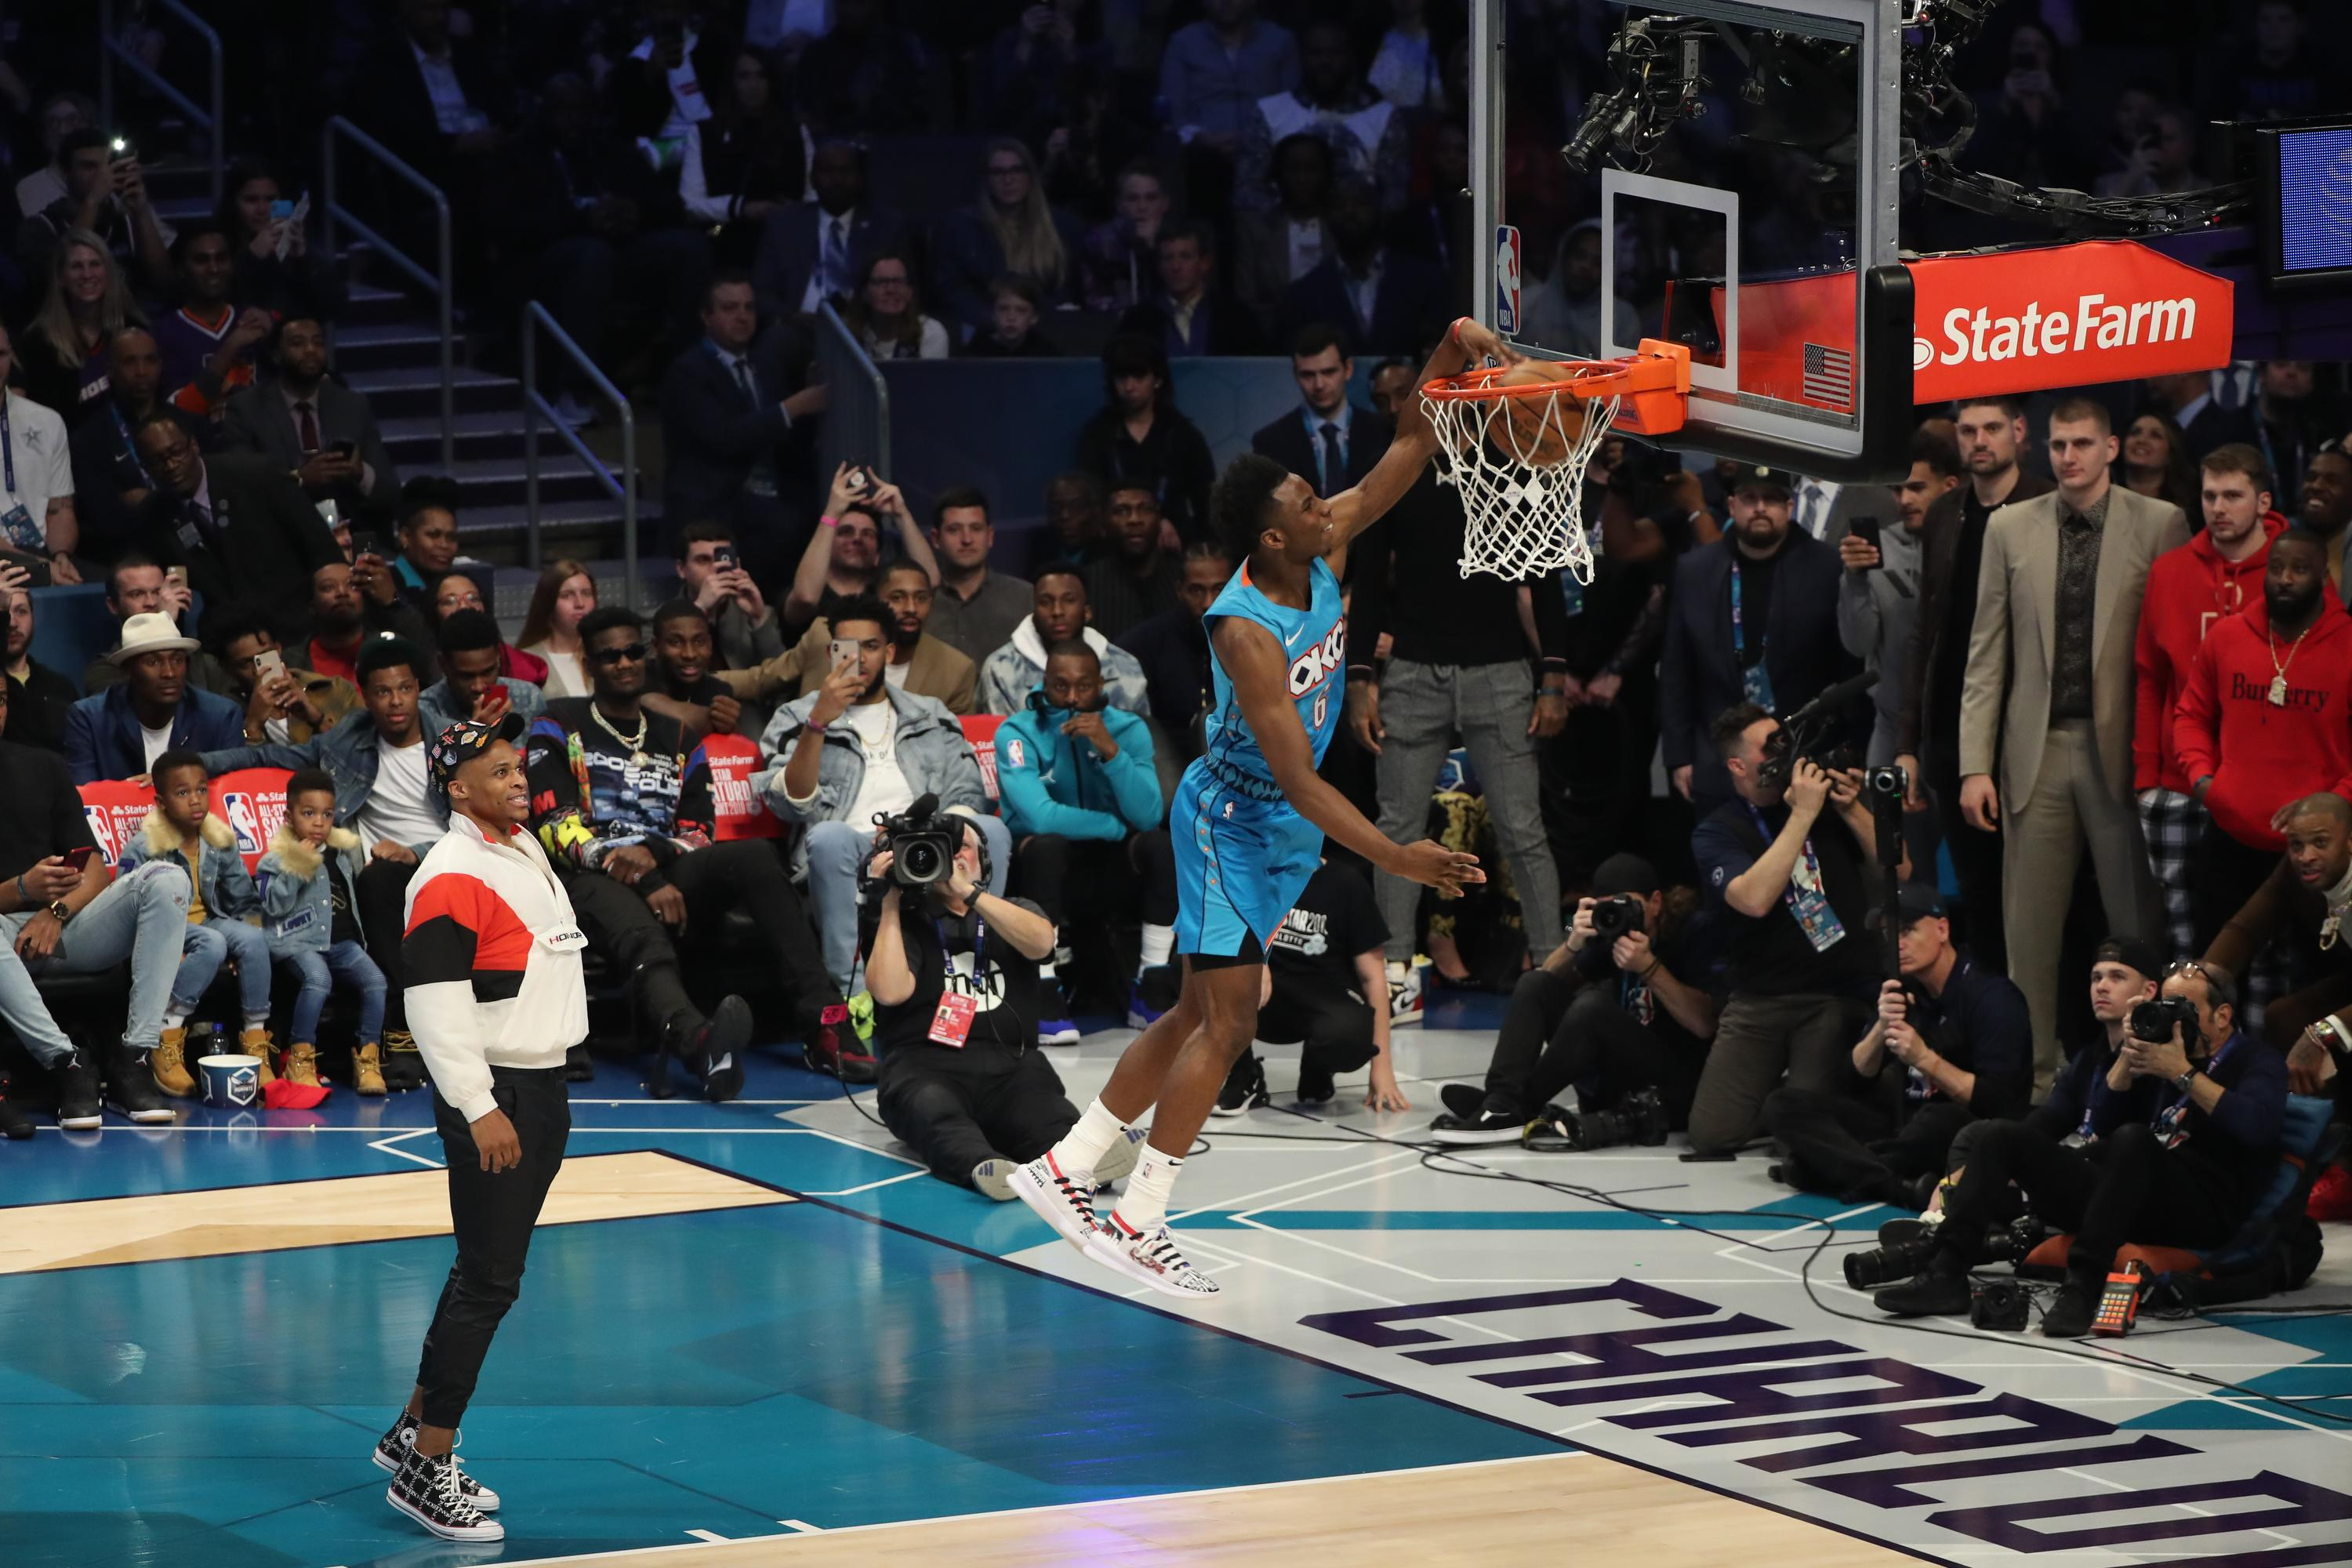 Thunder G Hamidou Diallo wins 2019 Slam NBA Dunk Contest 9587a012d0